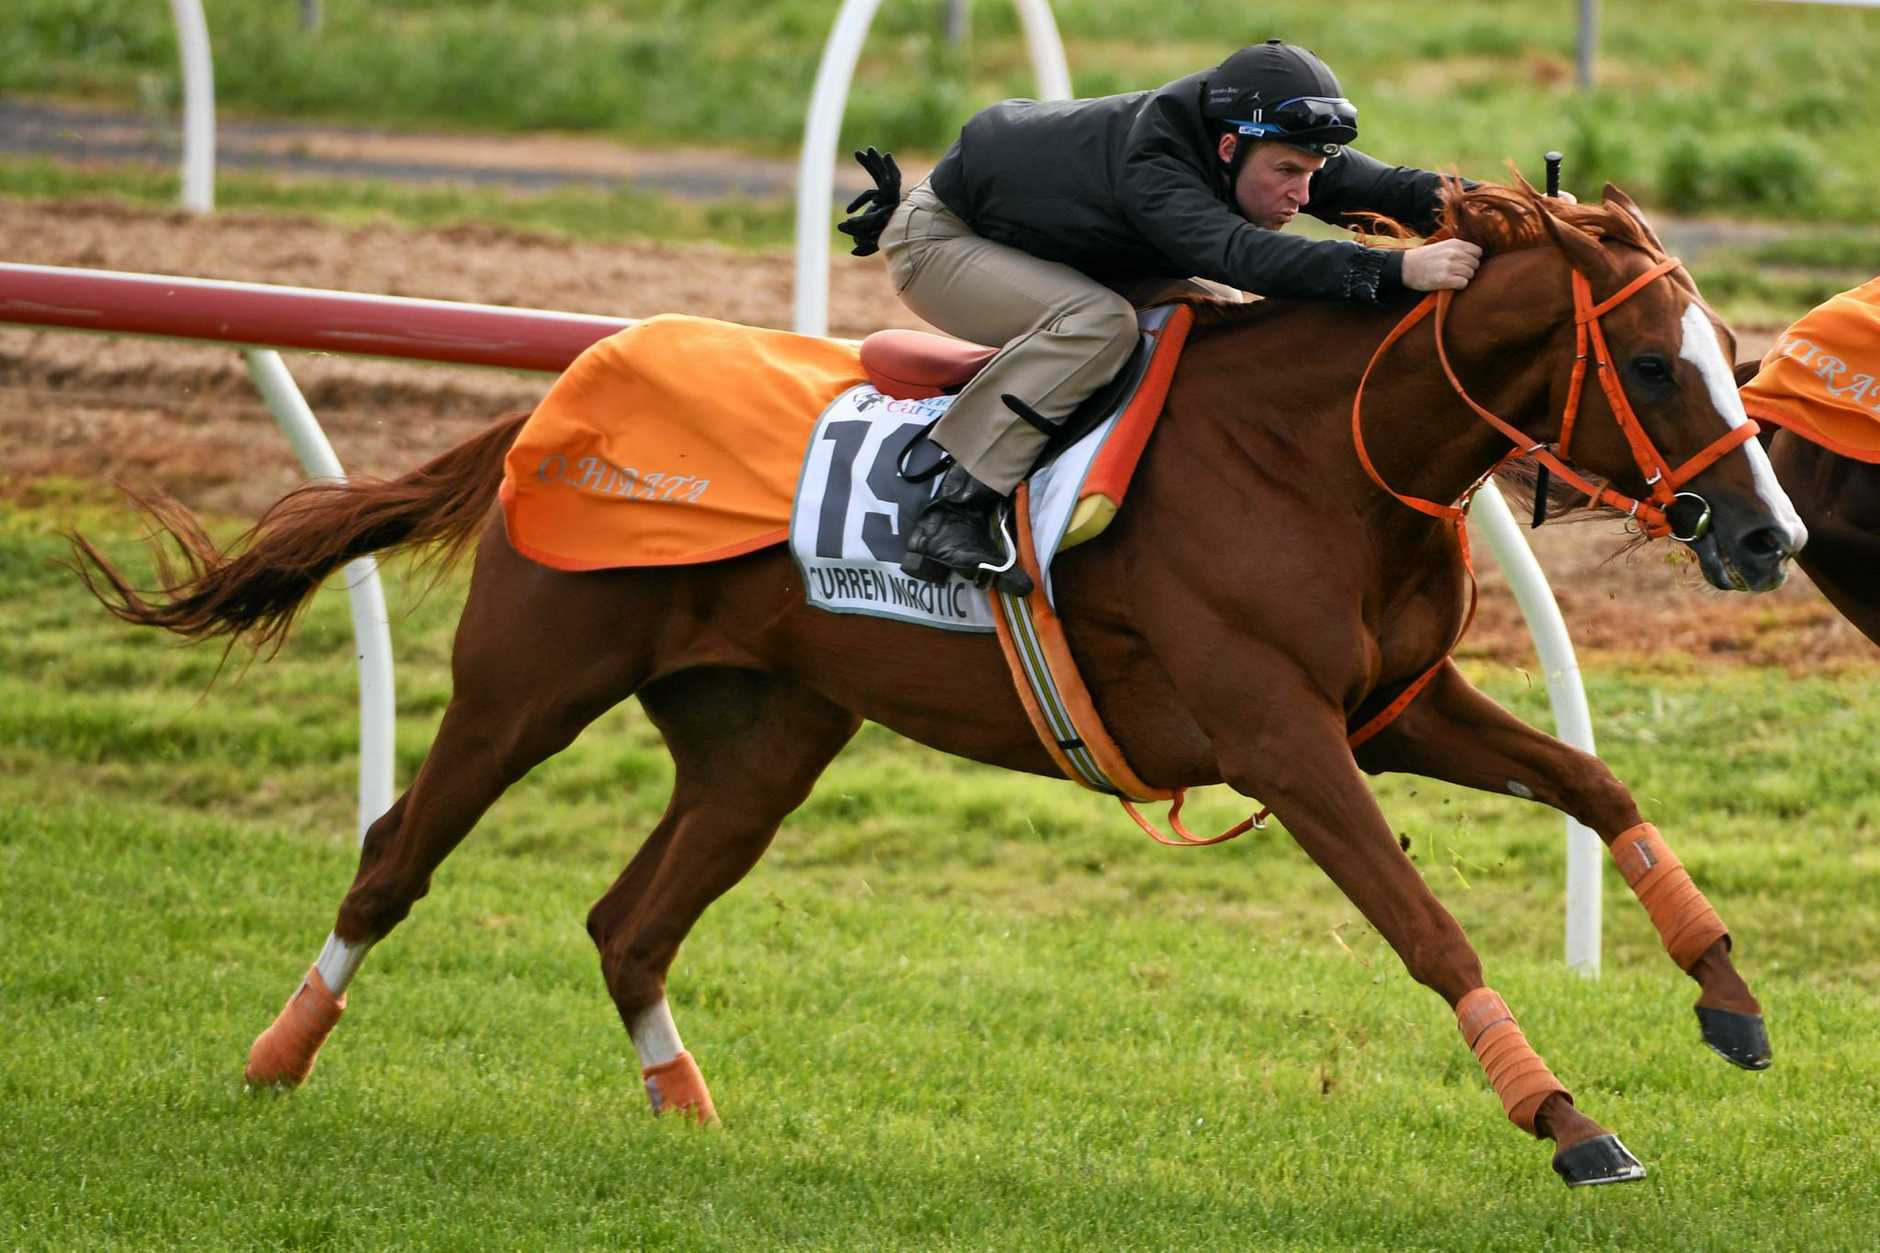 Tommy Berry rides Curren Mirotic of Japan during a trackwork session at Werribee.